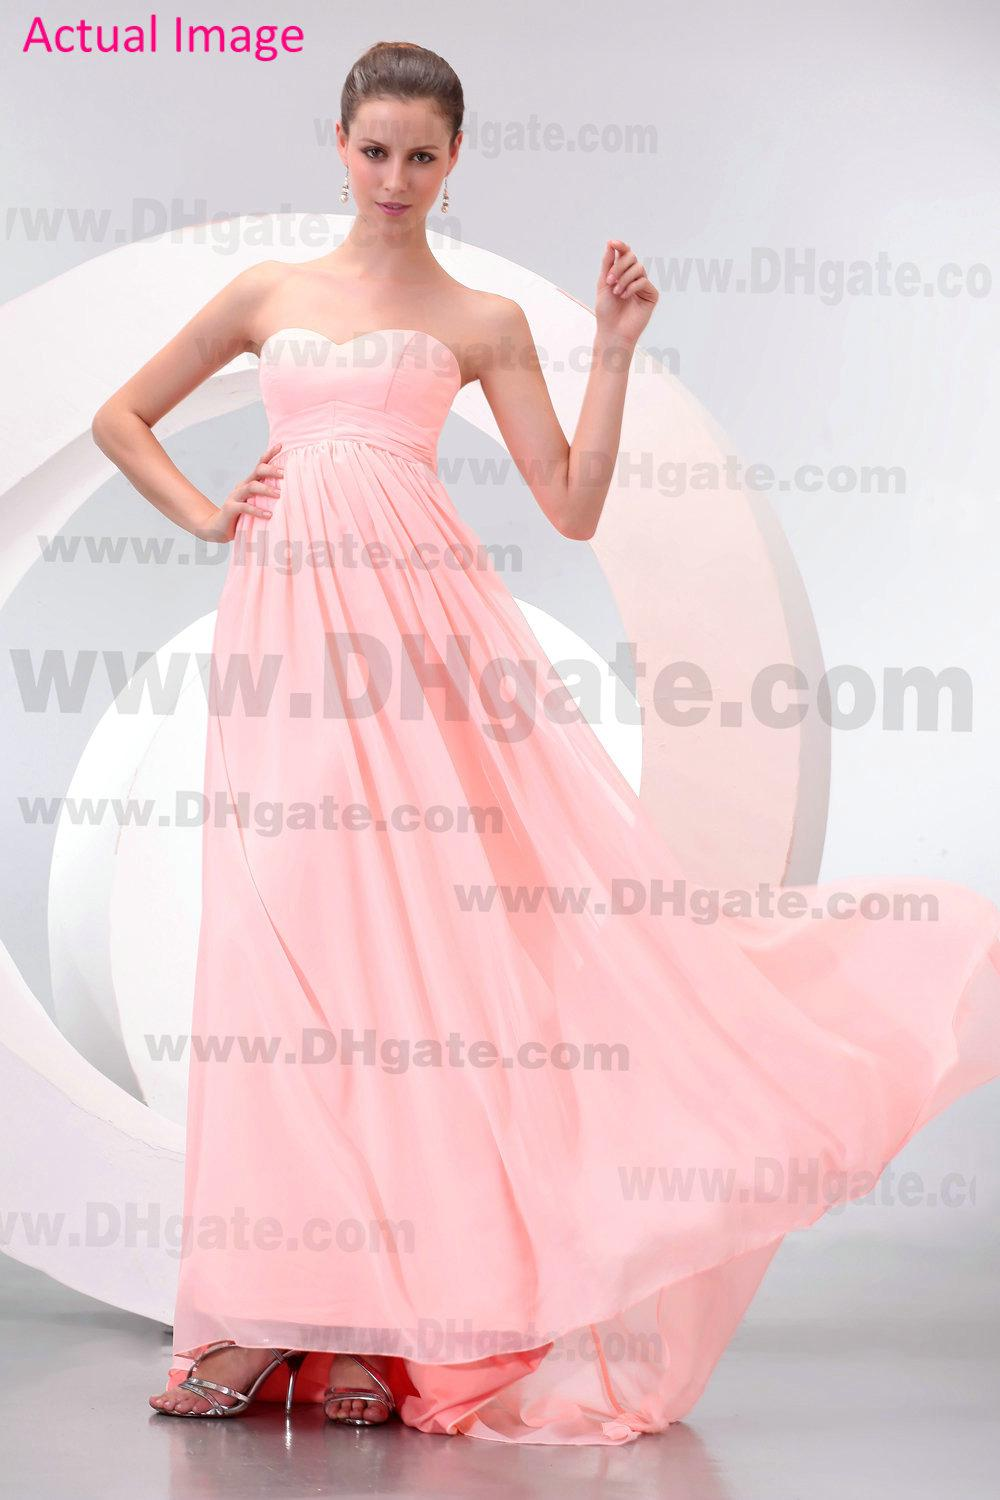 Pink Sweetheart Dress Photo Album - Best easter gift ever